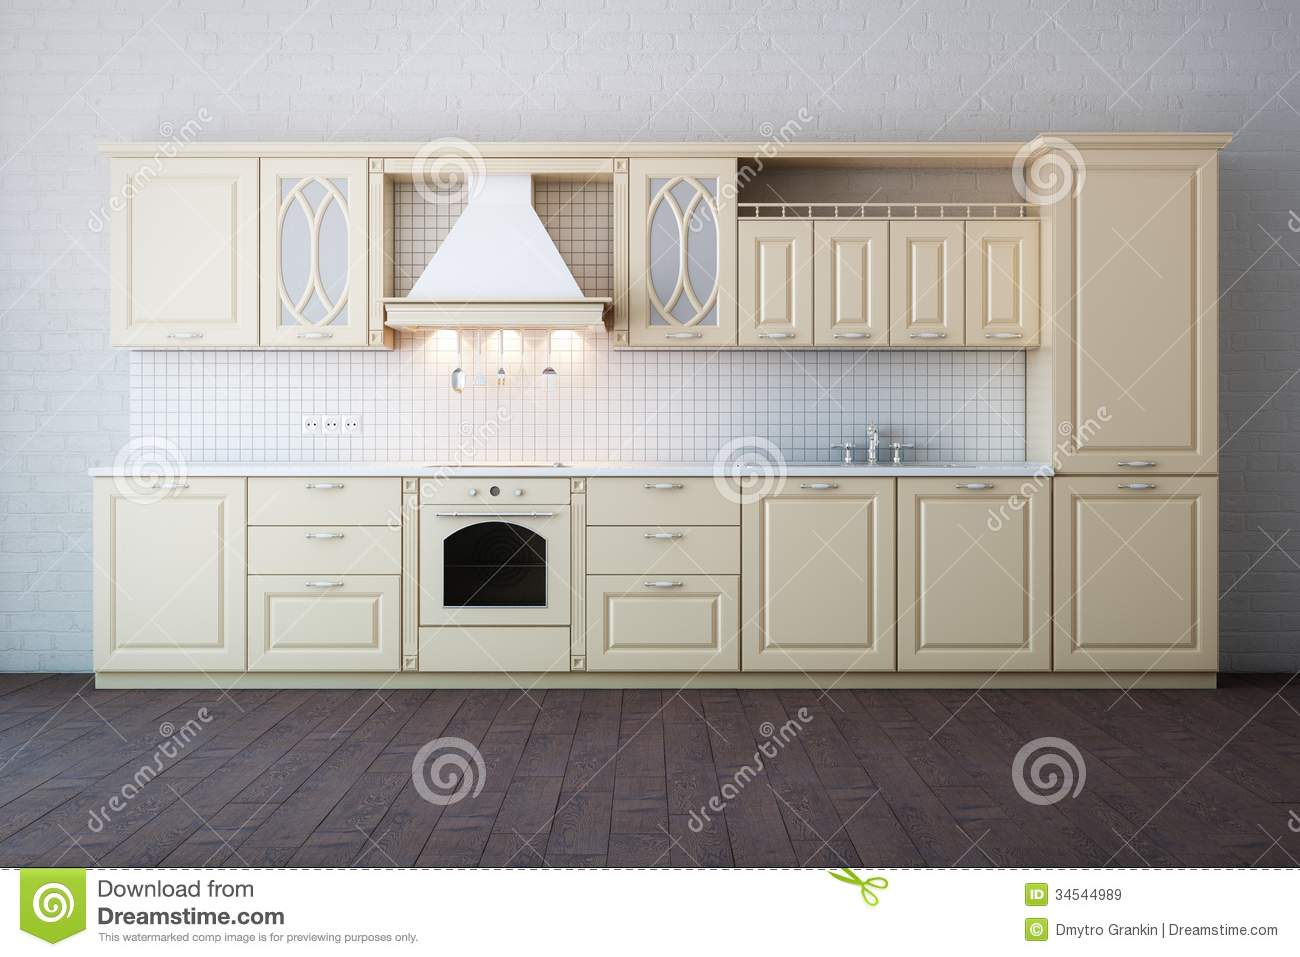 Classic Luxury Kitchen classic luxury beige kitchen royalty free stock images - image